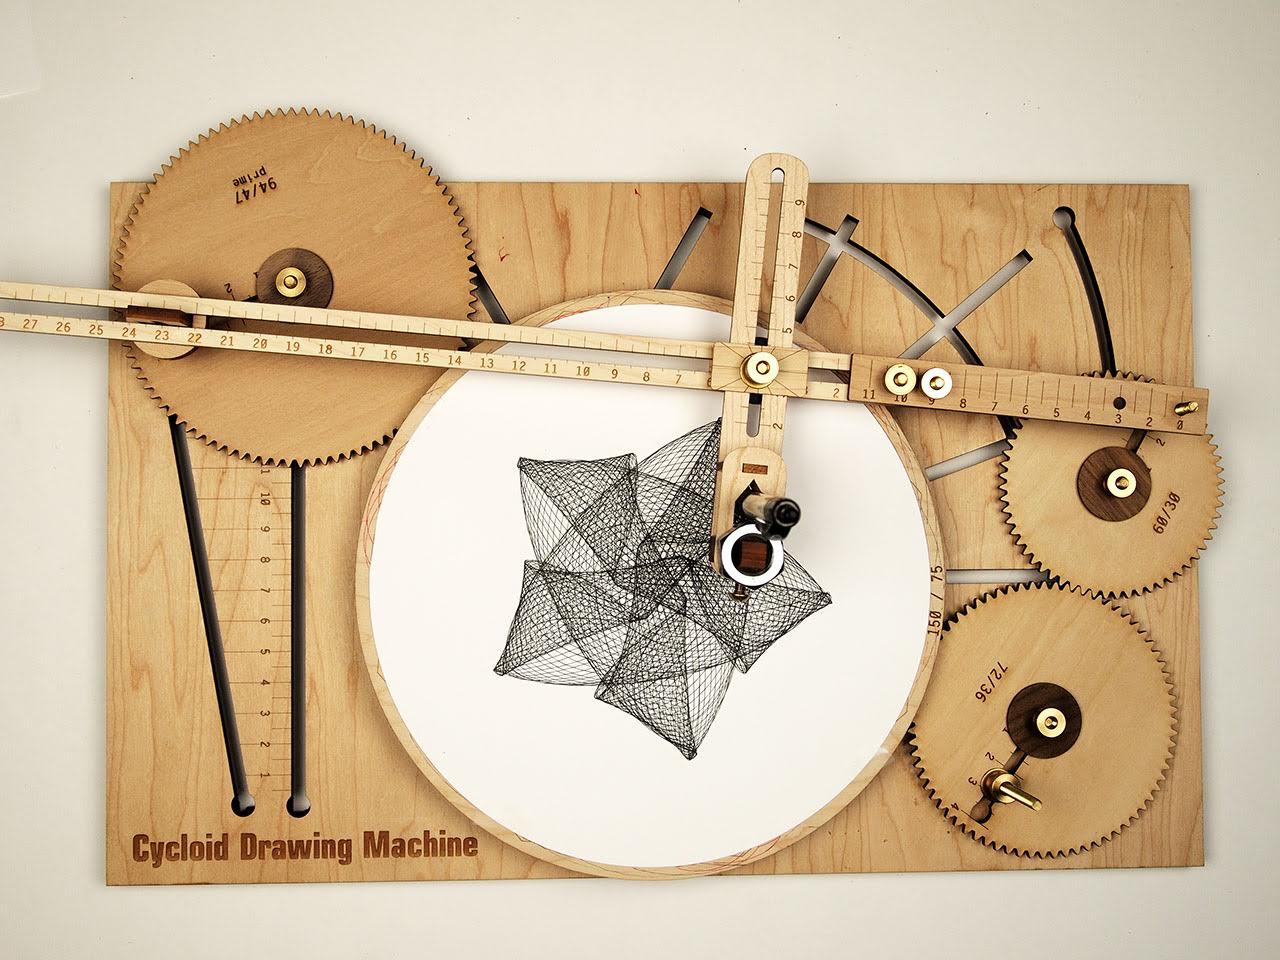 Sketch Intricate Designs with A Hand-Cranked Drawing ...